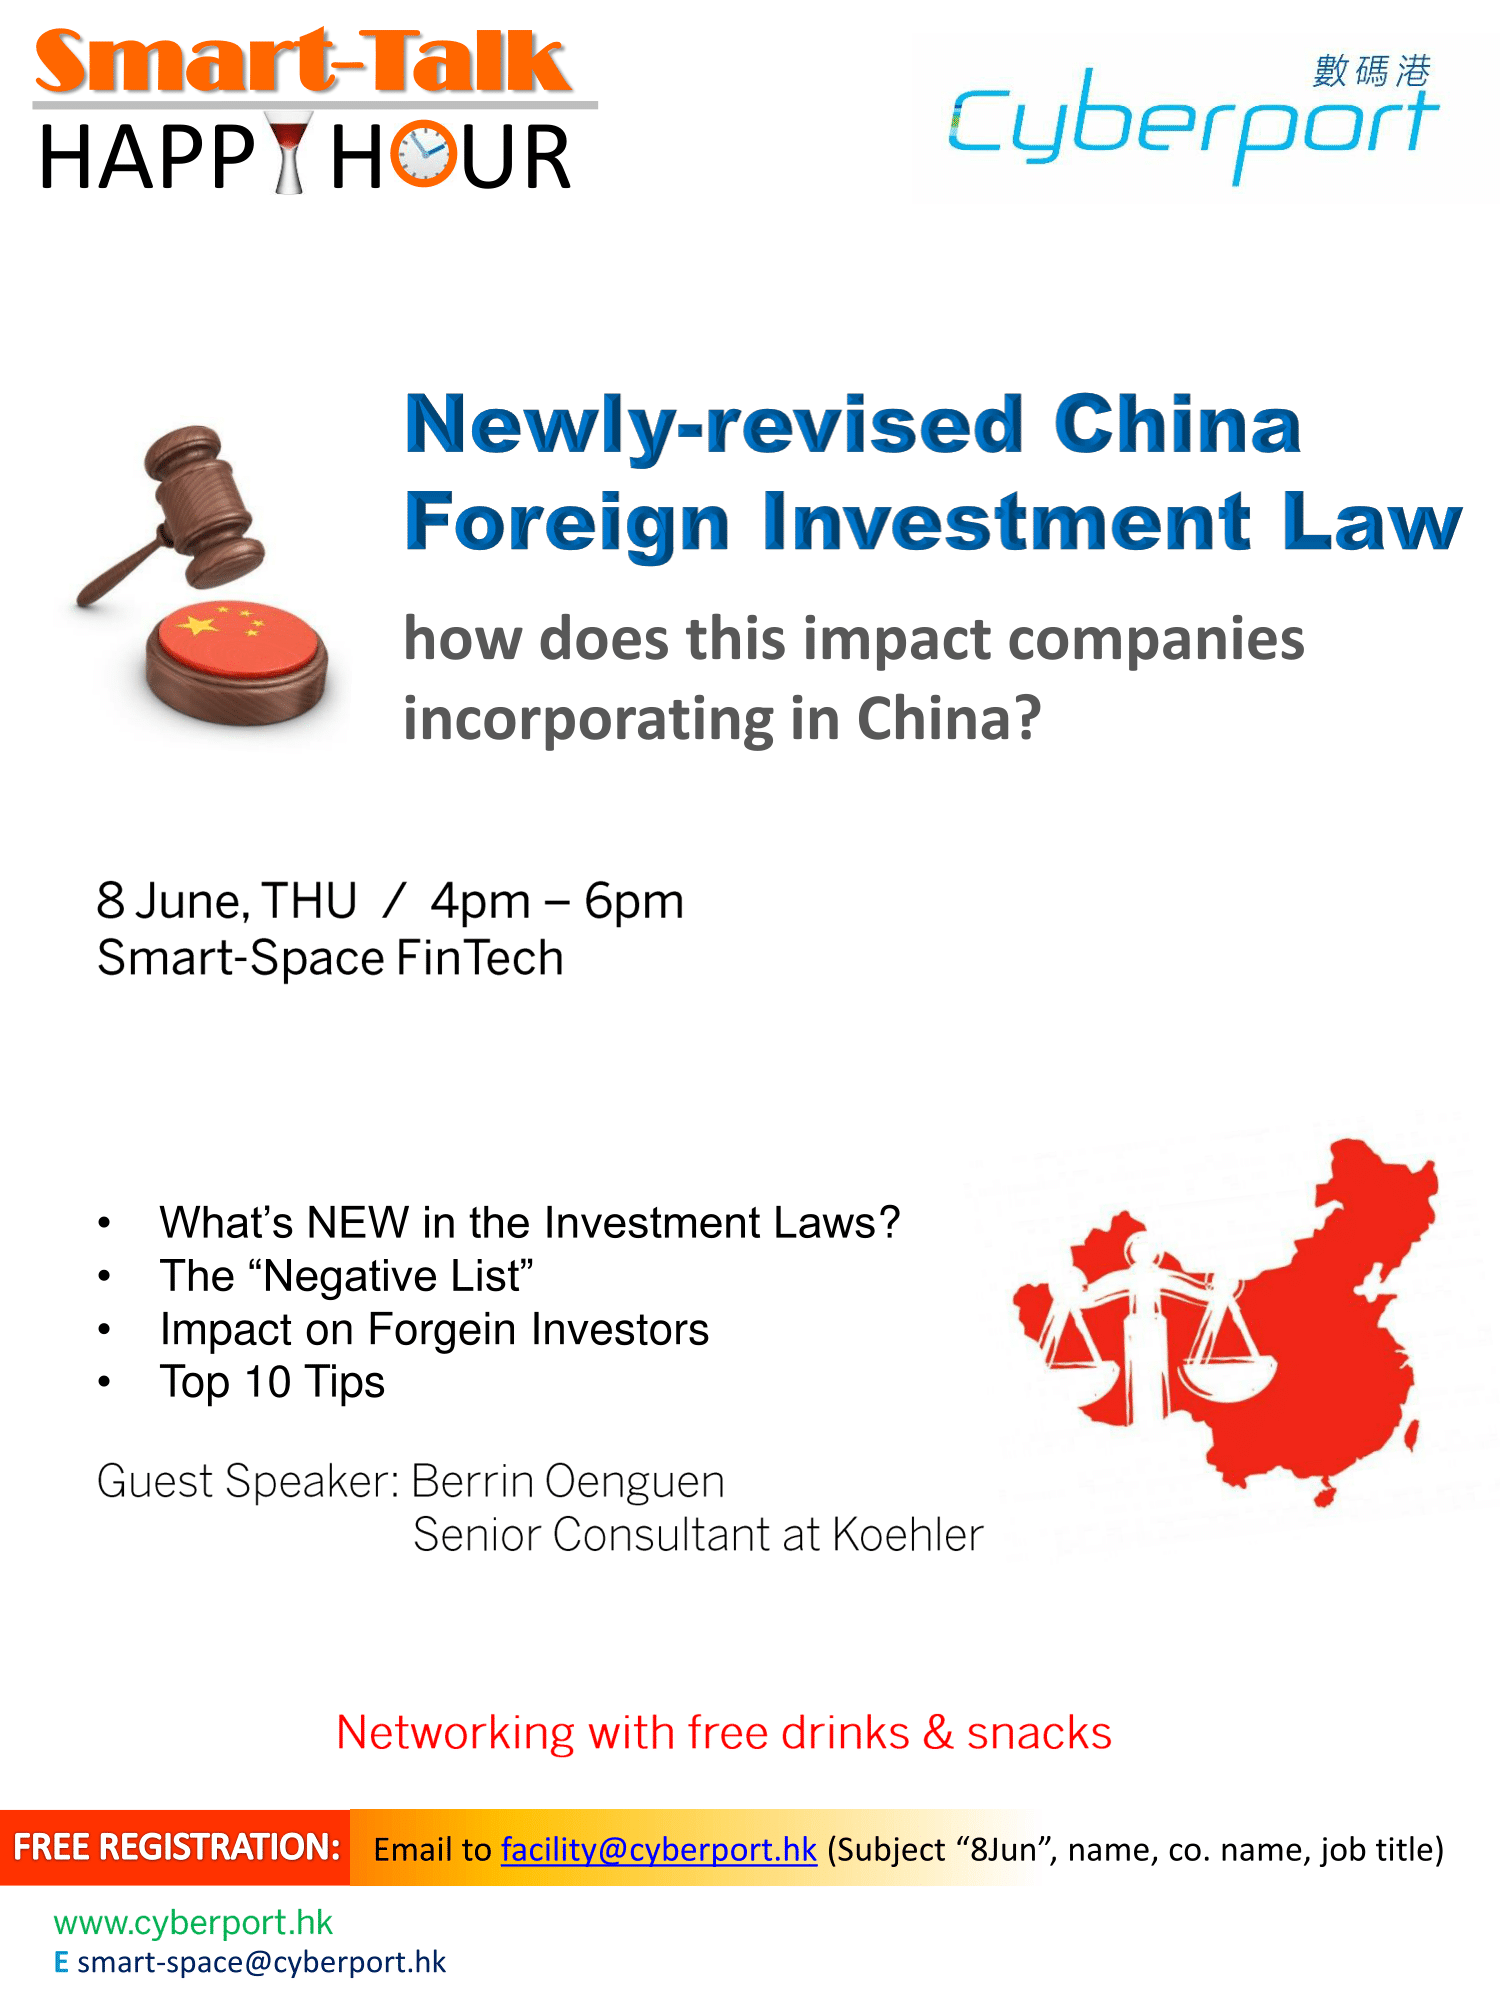 Smart Talk & Happy Hour: Newly-revised China Foreign Investment Law: how does this impact companies incorporating in China?